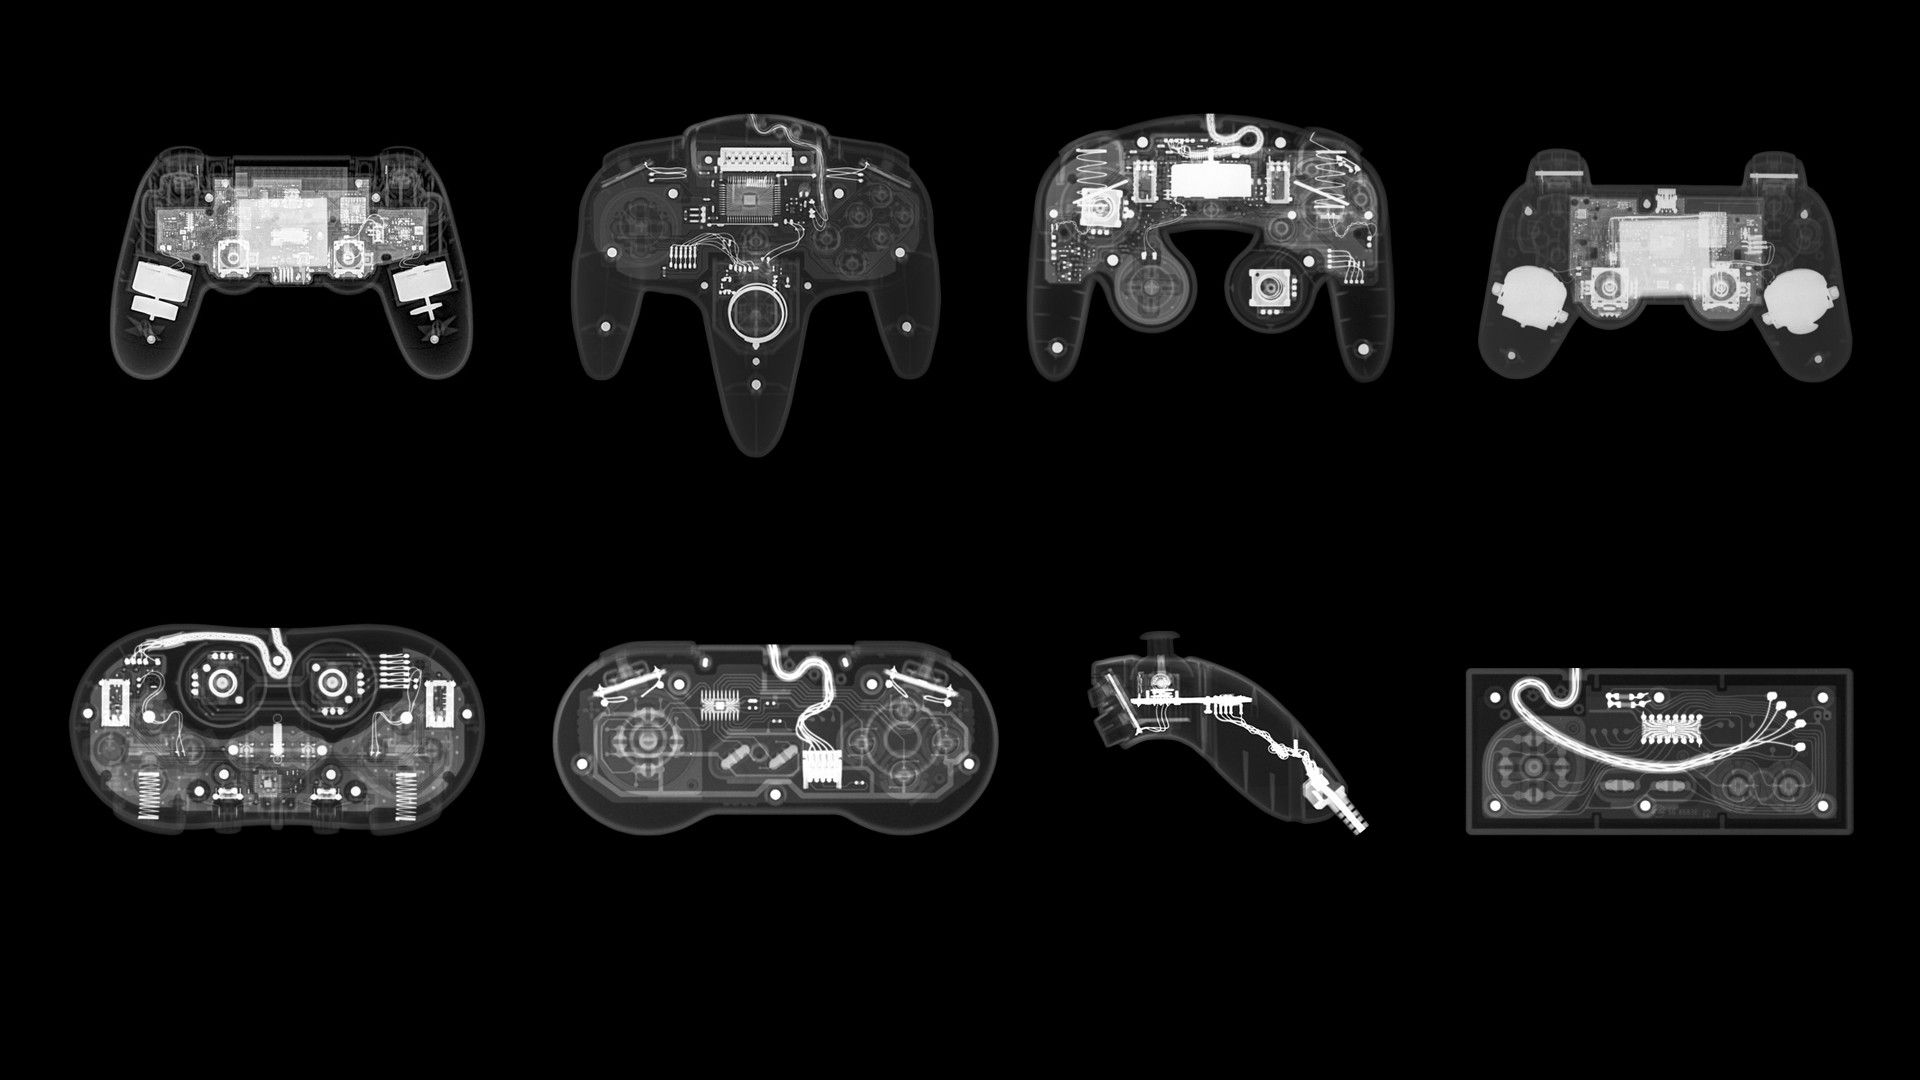 Joey jordison style favor photos pictures and wallpapers for - Video Game Controller Wallpaper Full Hd